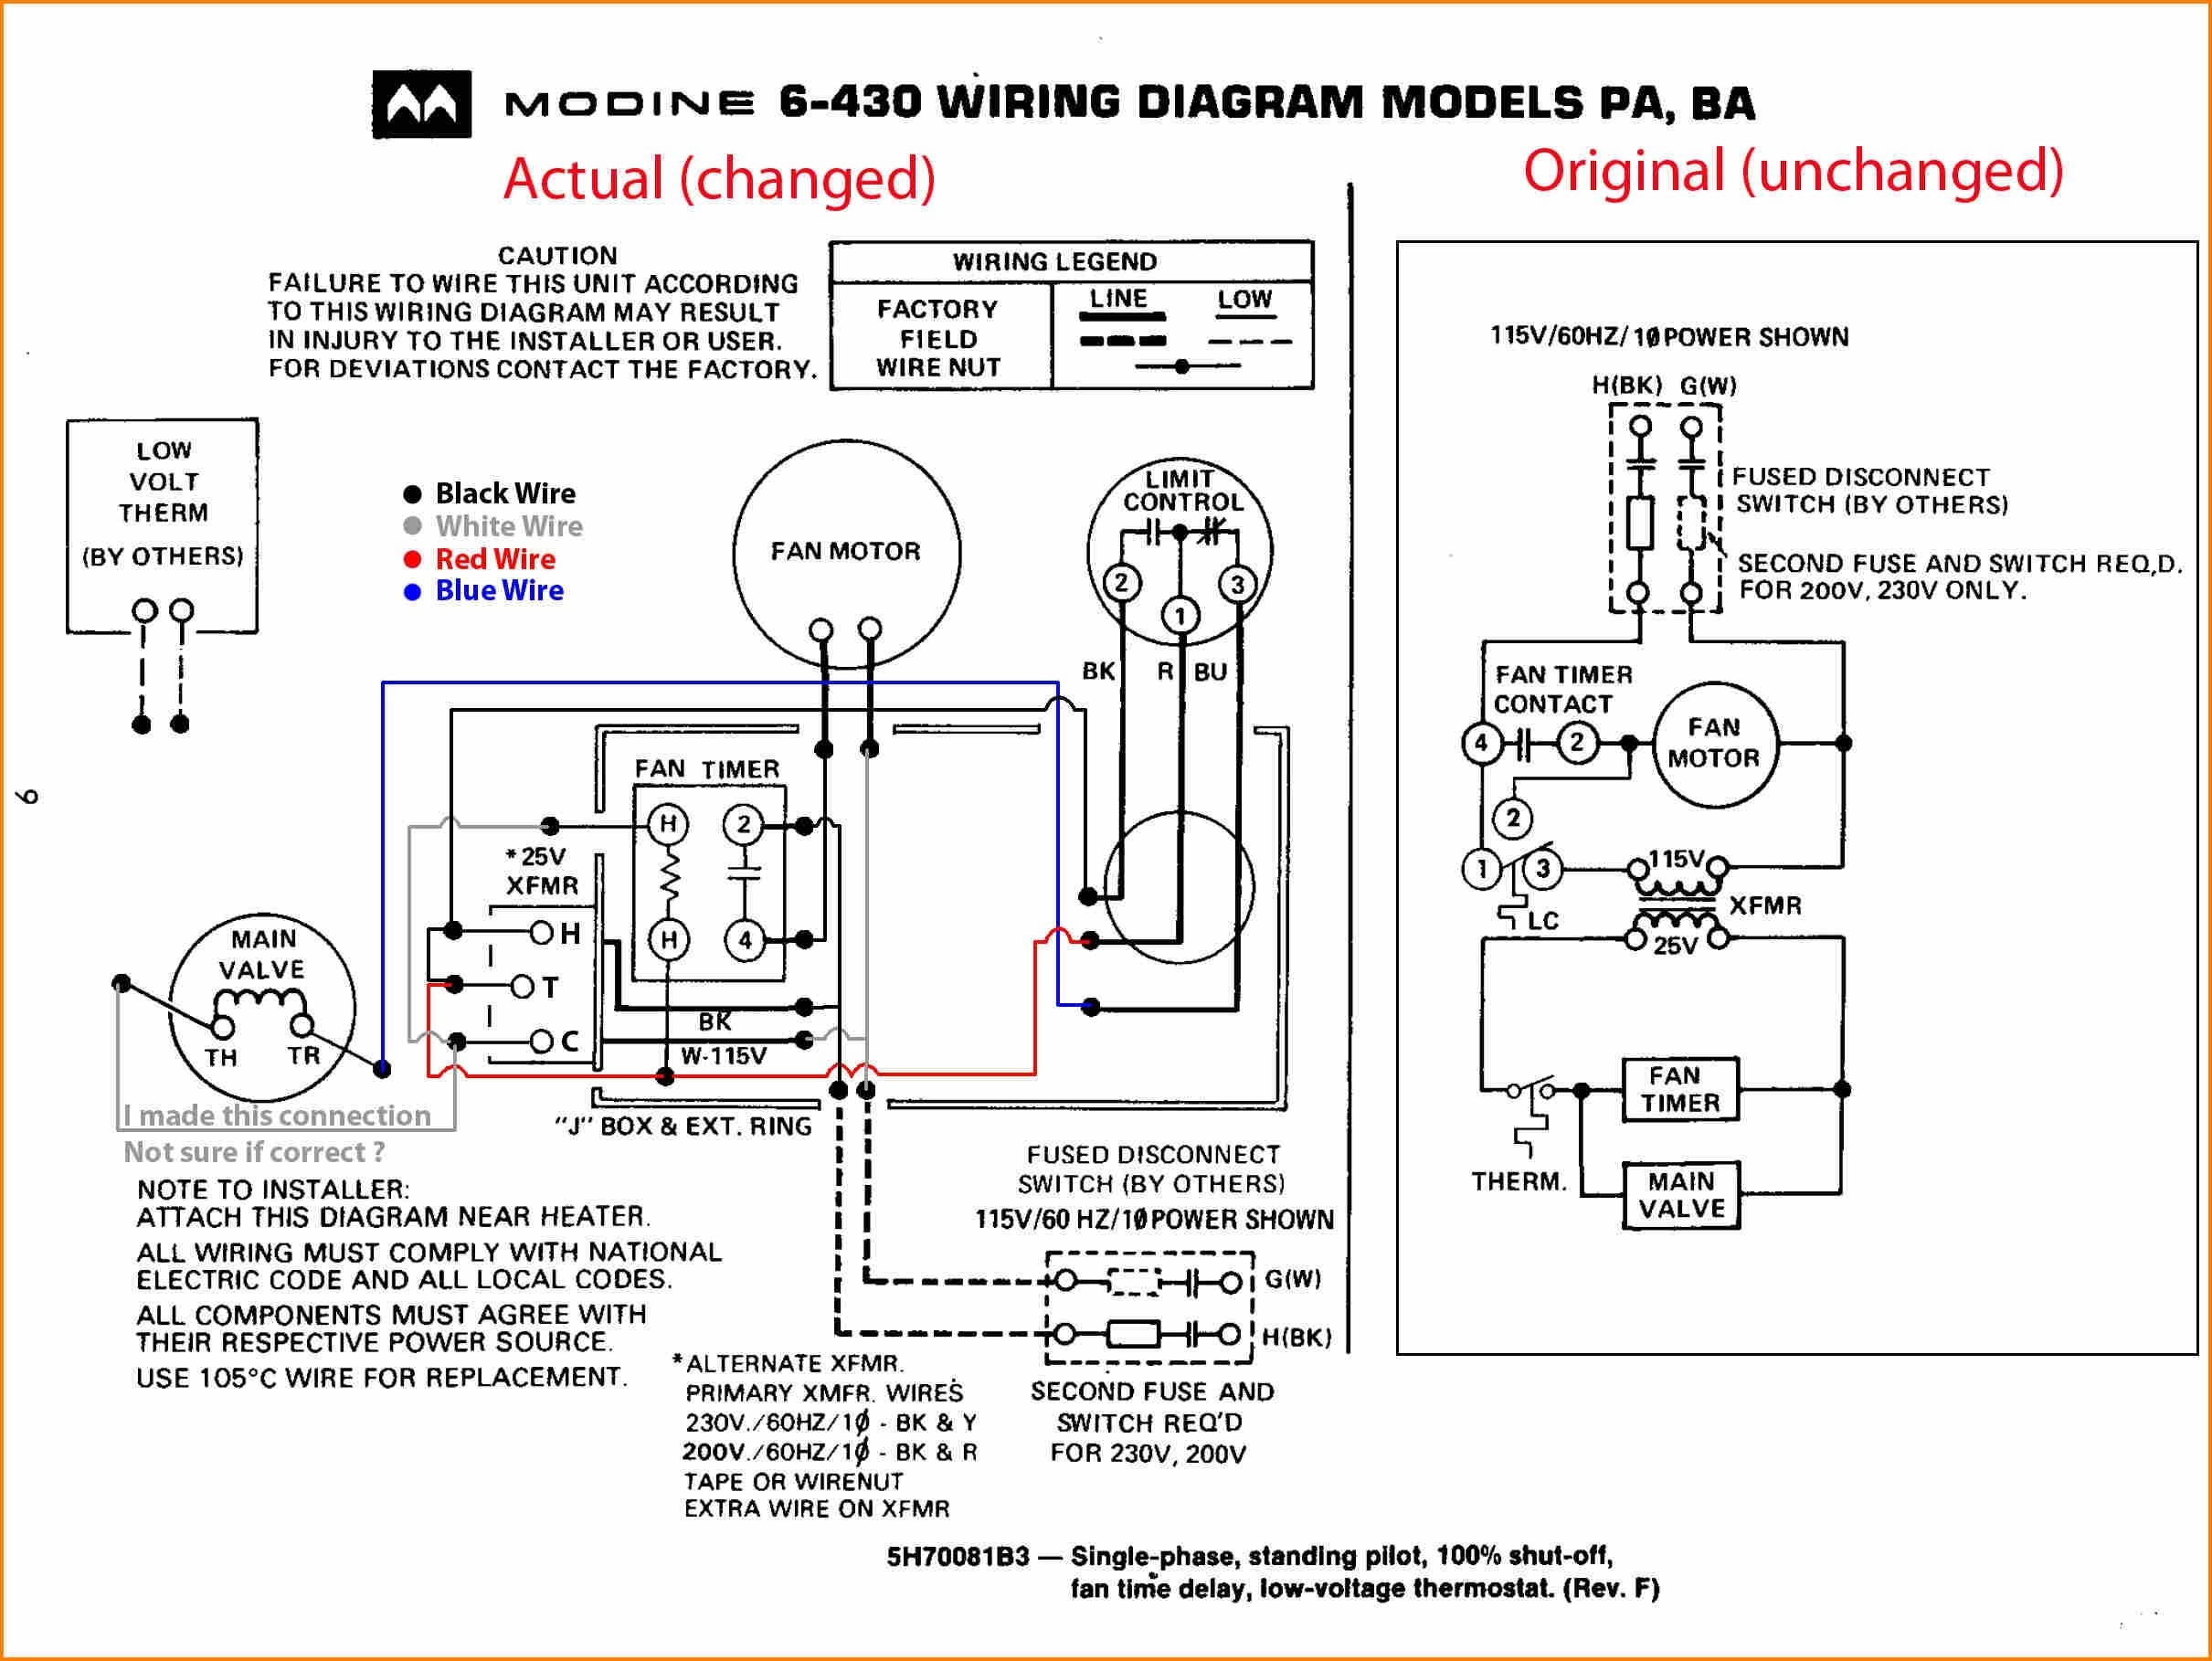 X Axi Motor Wire Diagram